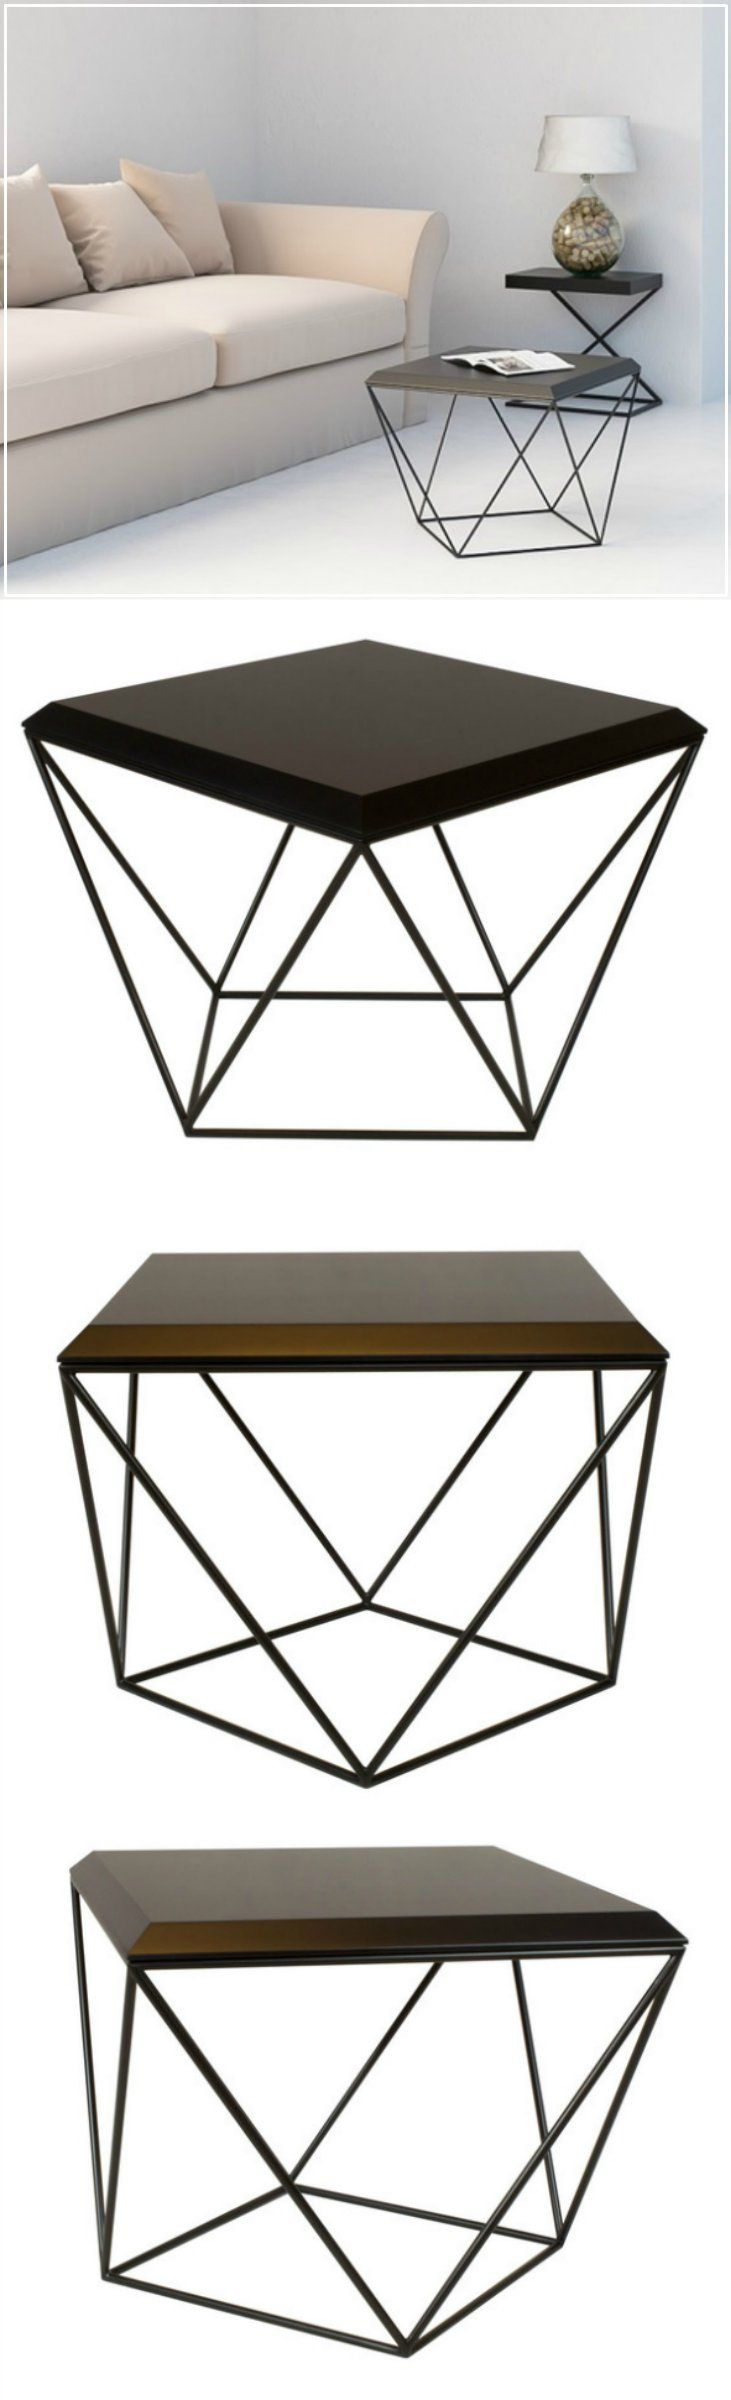 TULIP is a minimalist coffee table with an intriguing geometric silhouette. Just turn it 90 degrees and watch it get a totally different shape. Minimalistic home design, minimal designer furniture - a unique product by take me HOME via en.dawanda.com